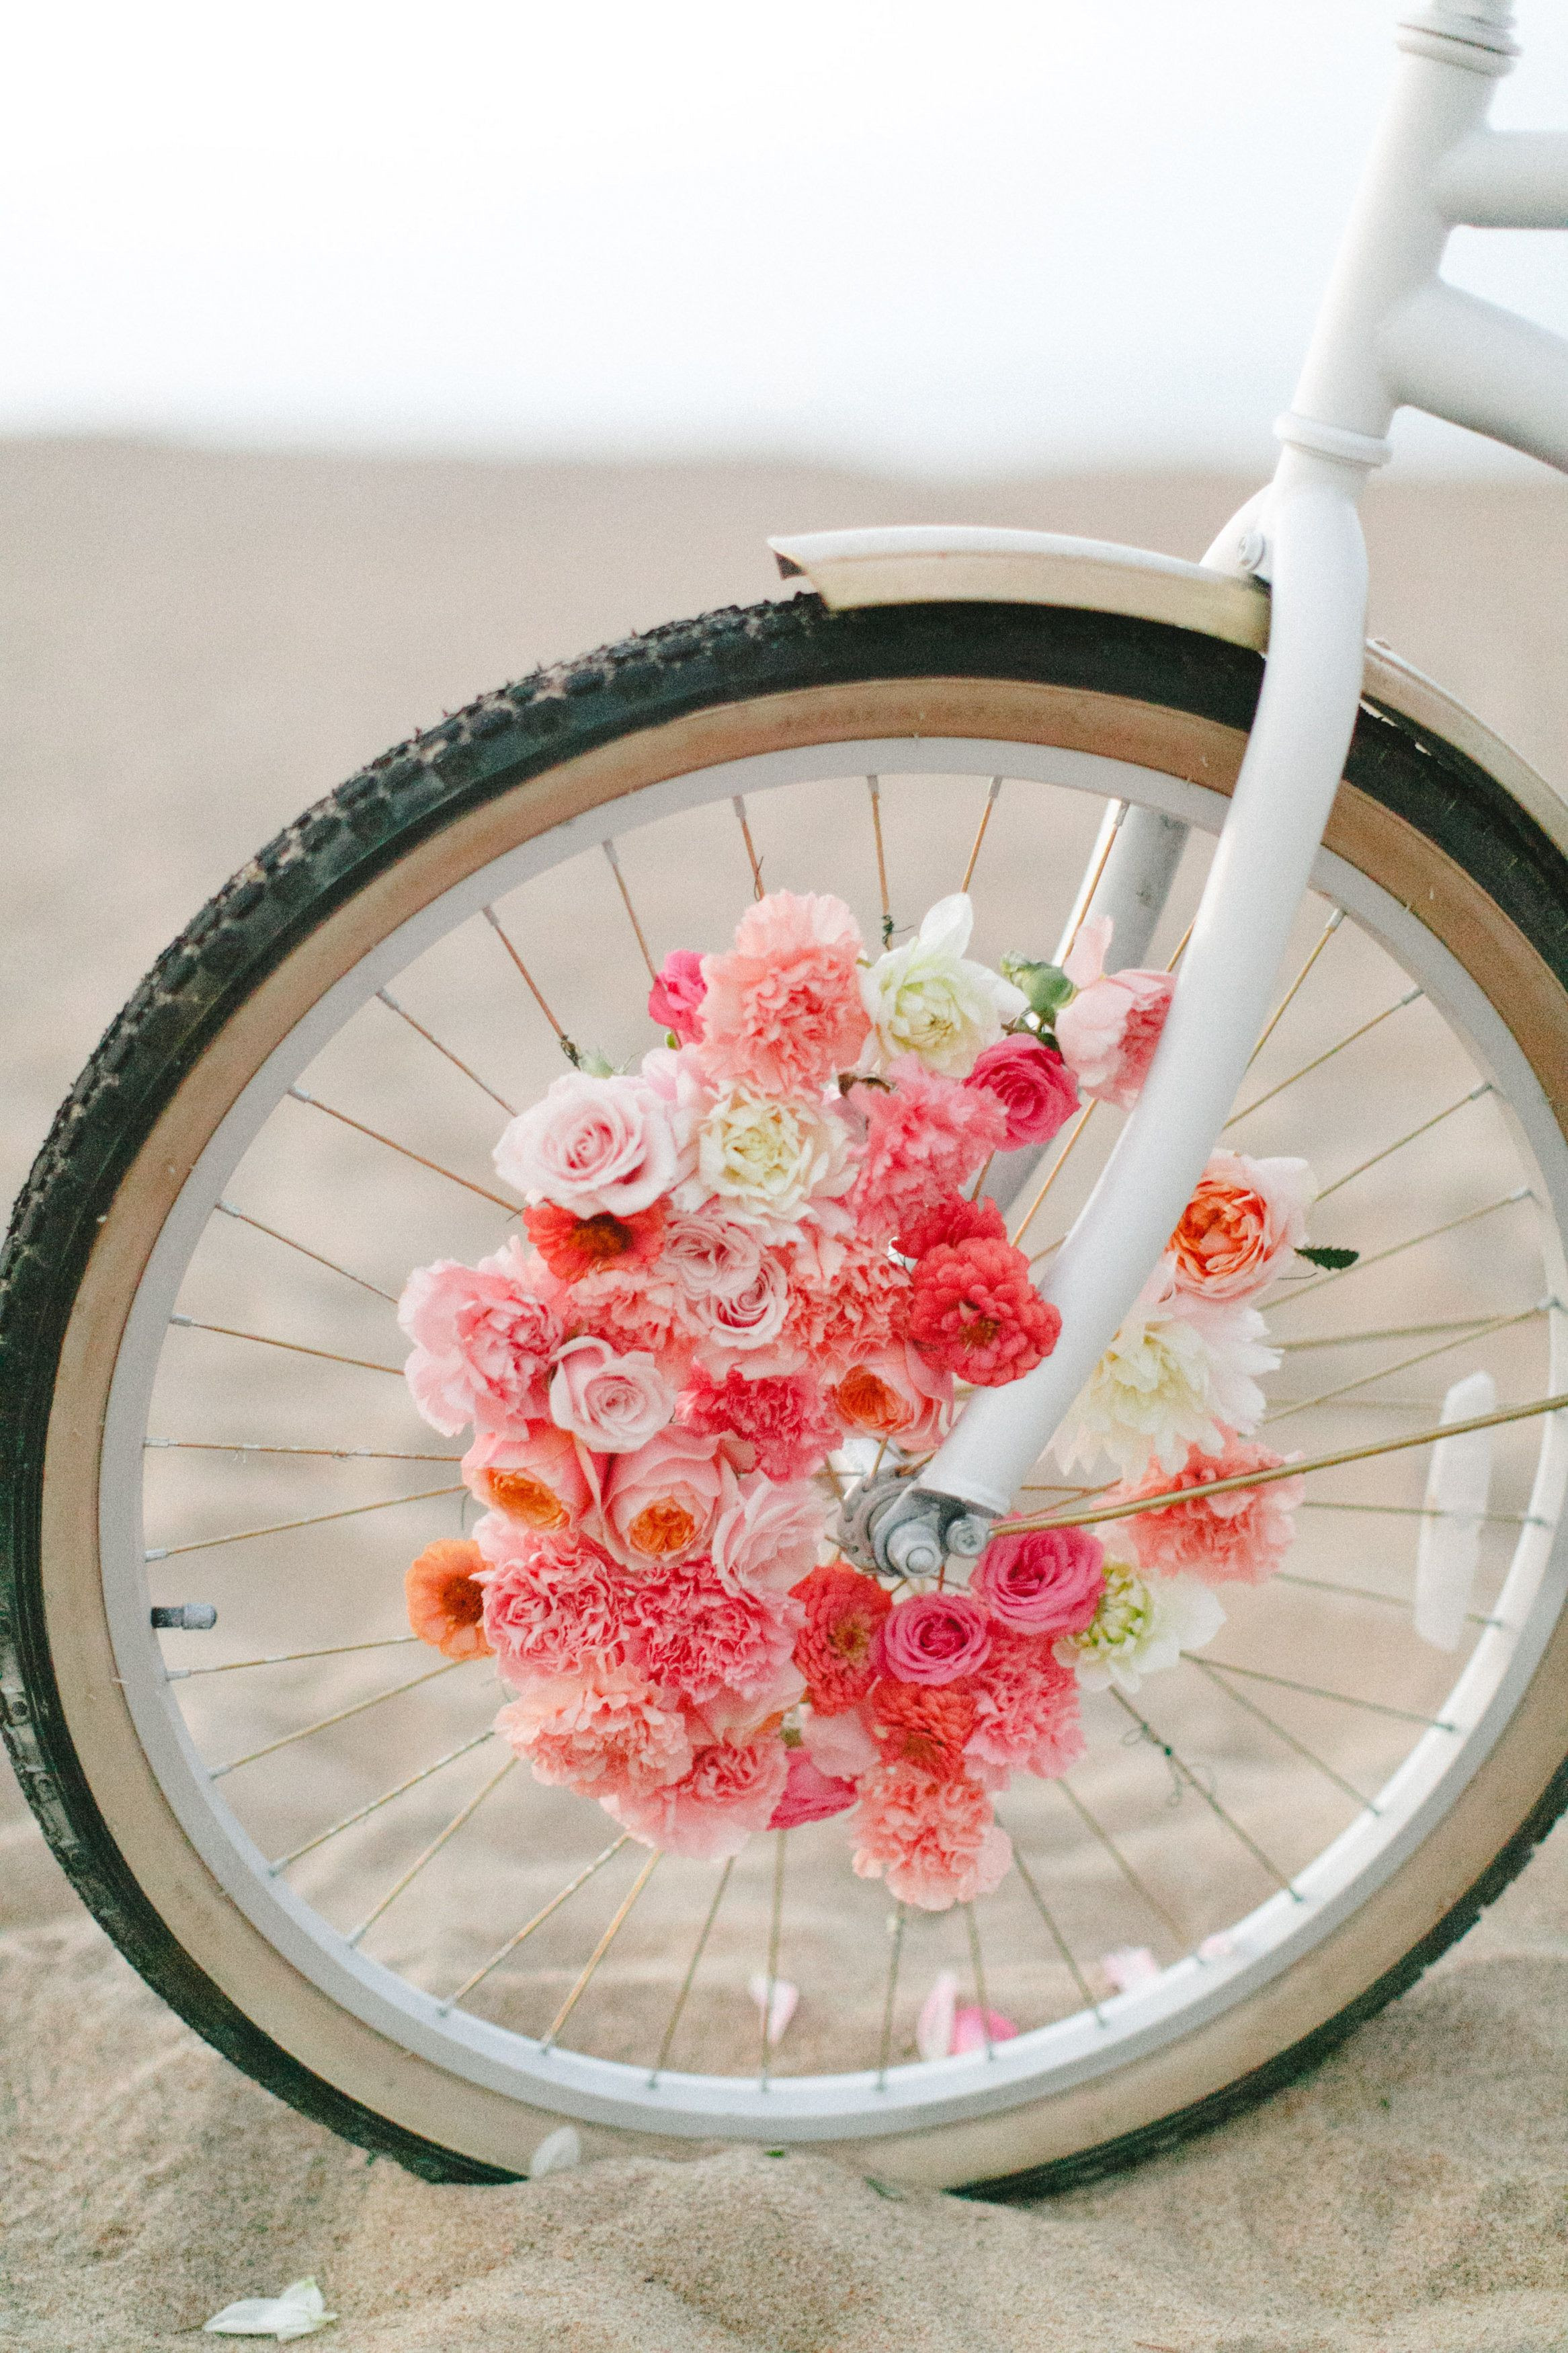 Flowers by Mail Awesome Diy Floral Beach Cruiser Surrounded with Flowers Iv